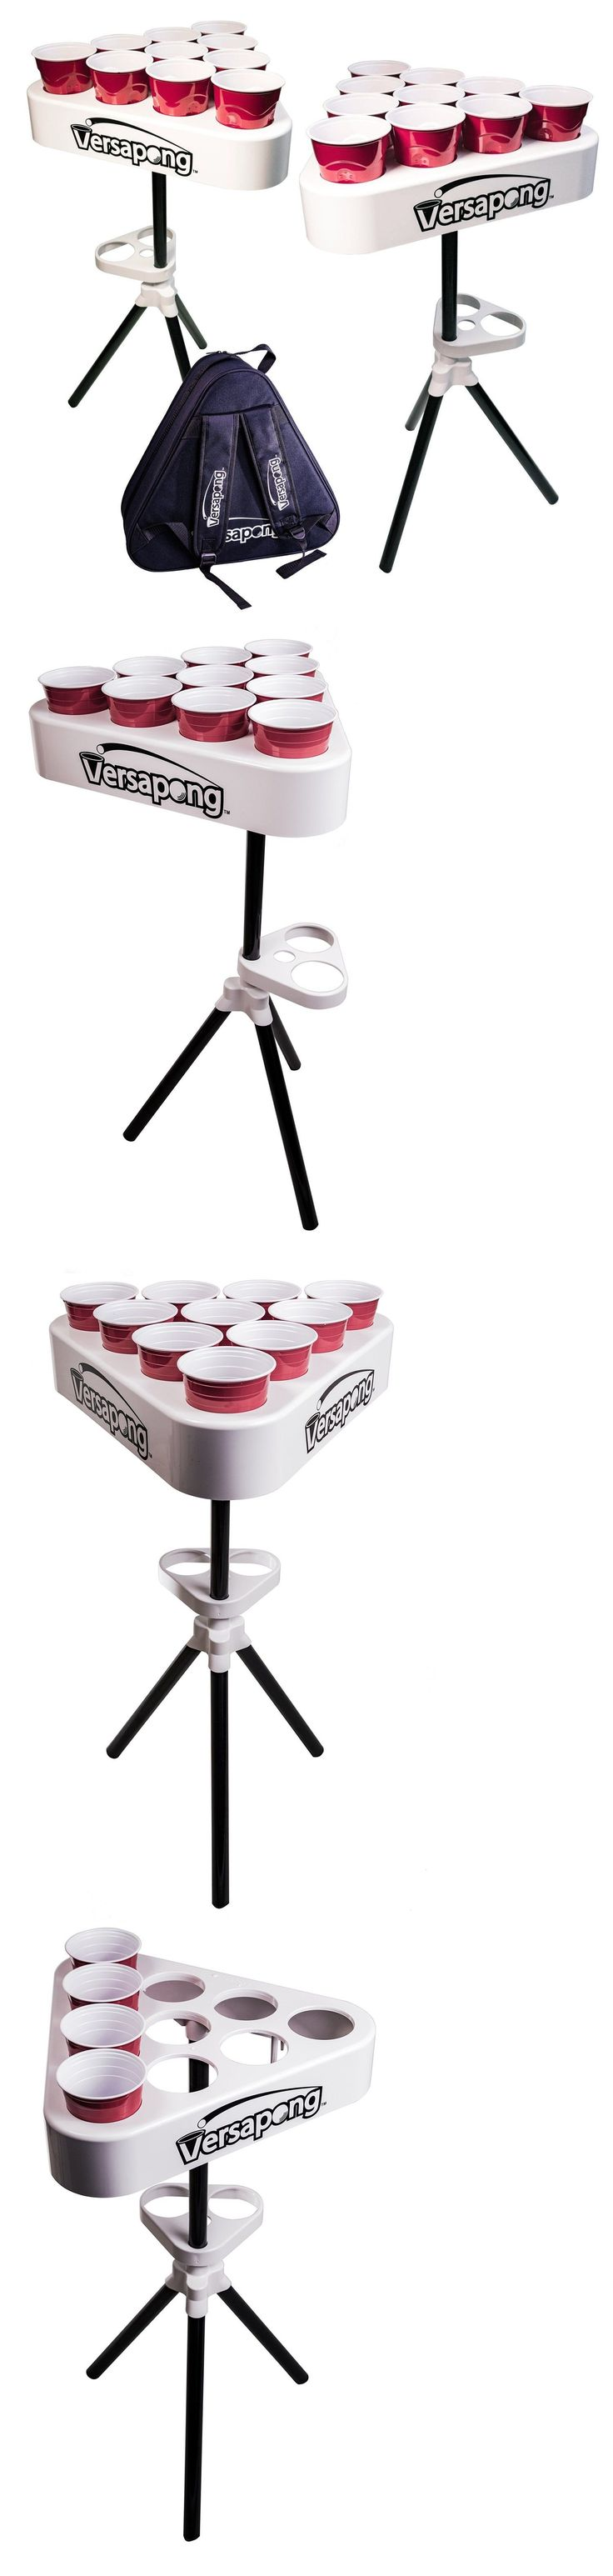 Beer pong table dimensions - Tables 97075 Versapong Portable Beer Pong Table Set Travel Game Outdoor Piece Fordable Black